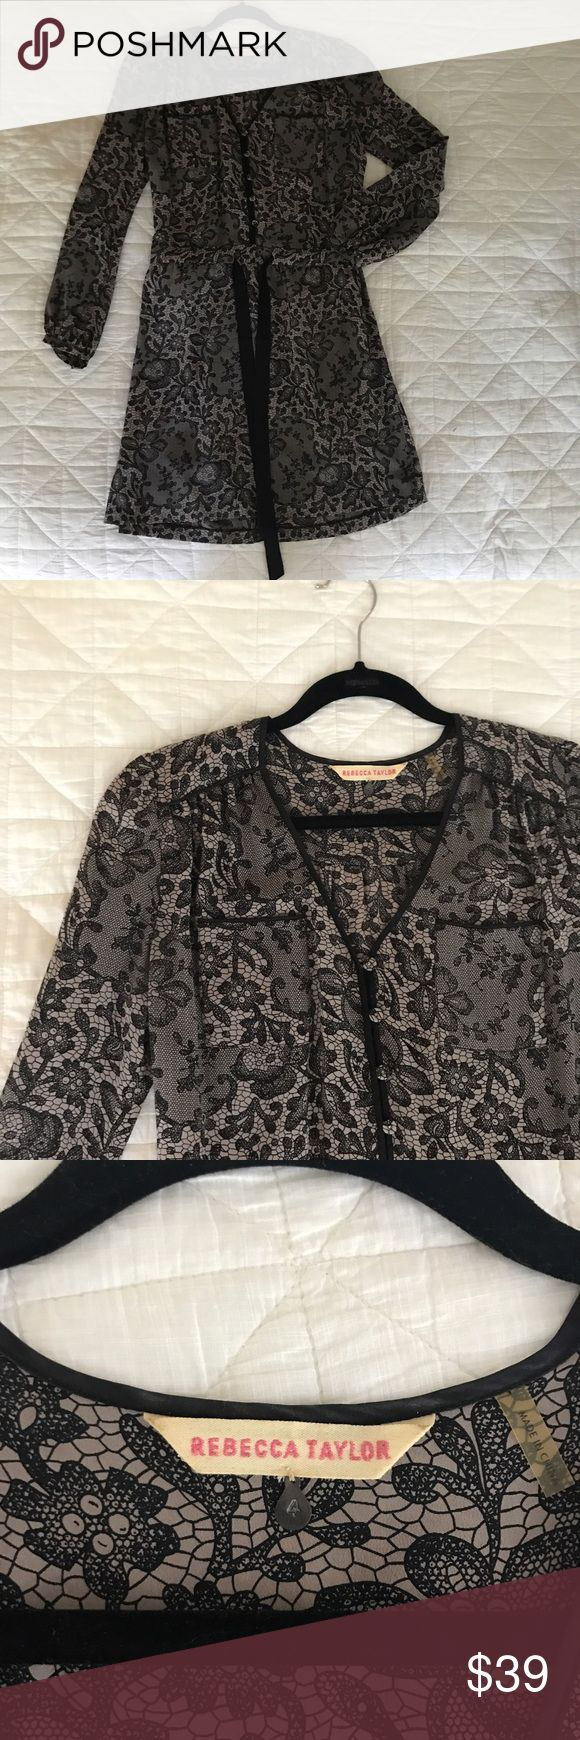 Rebecca Taylor Silk Dress Silk Rebecca Taylor dress with black and taupe lace print. Rebecca Taylor Dresses Long Sleeve